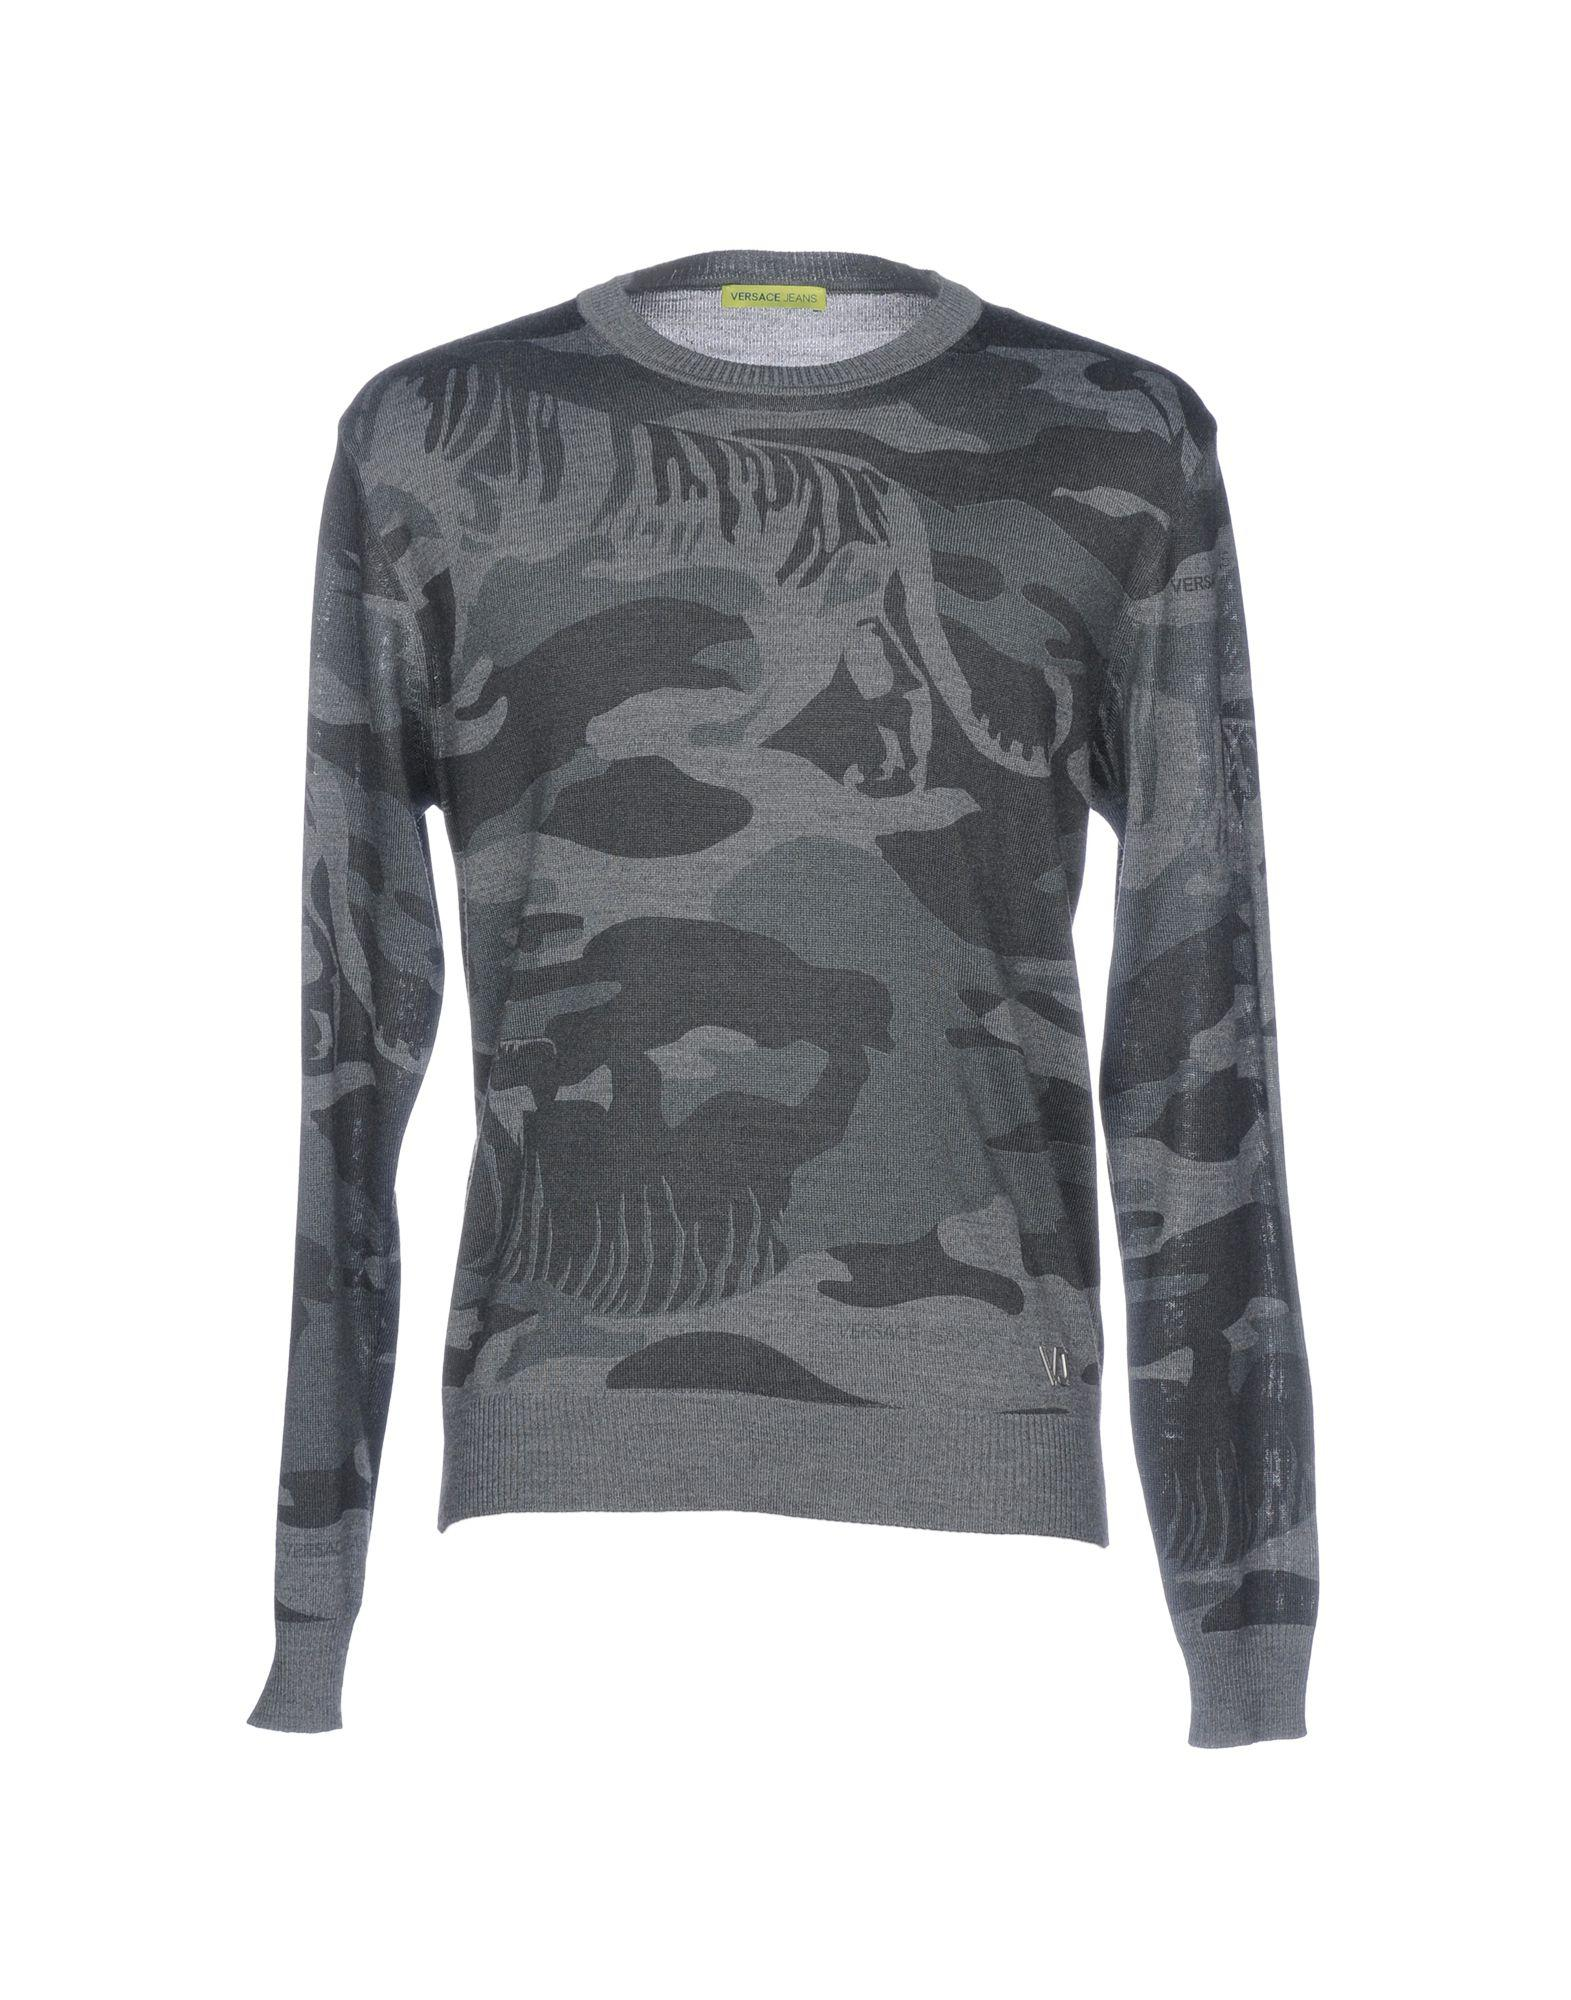 Versace Jeans - Gray Sweater for Men - Lyst. View fullscreen c19c41e7a63